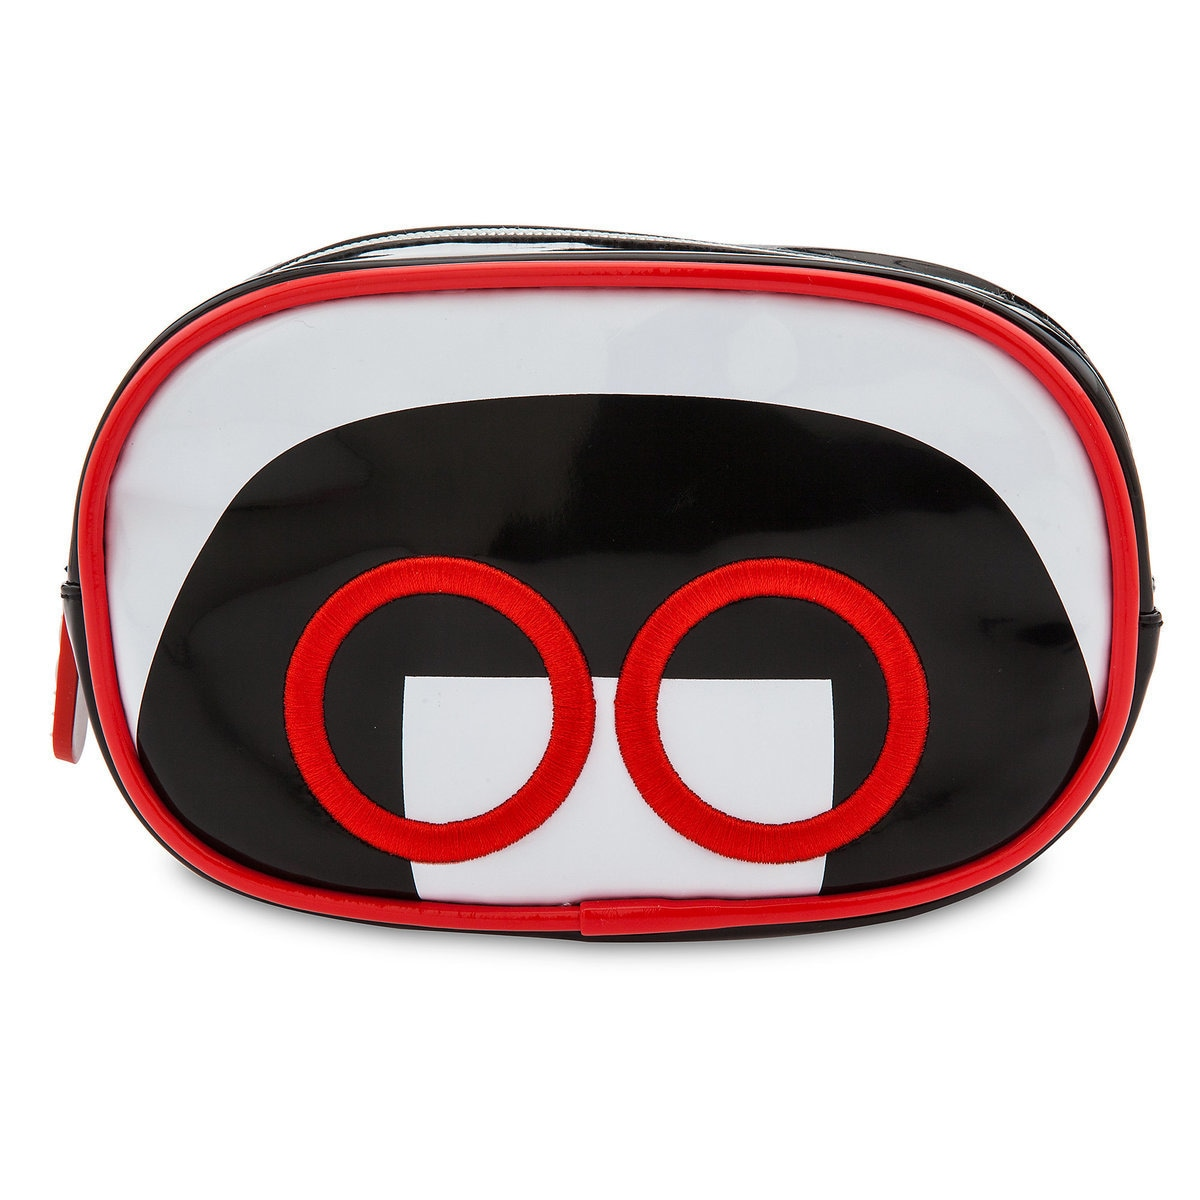 ec87ca24111 Product Image of Edna Mode Zipper Pouch - Incredibles 2   1